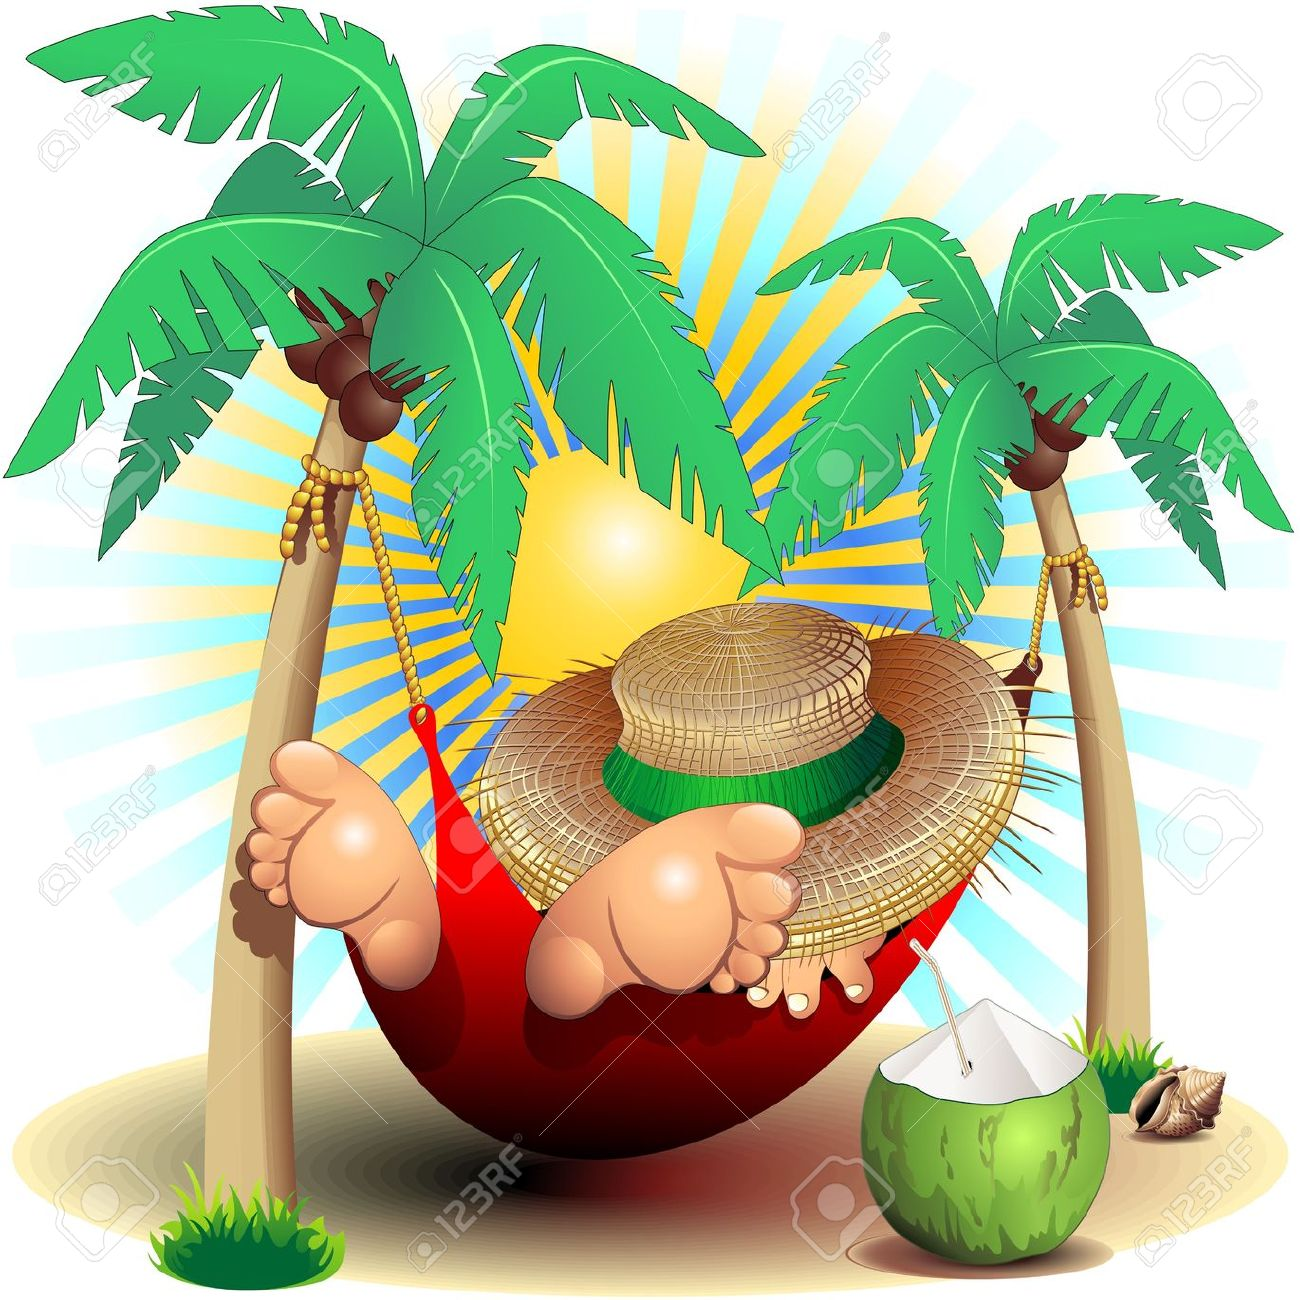 Vacation clipart relaxation Art Free Images – Images